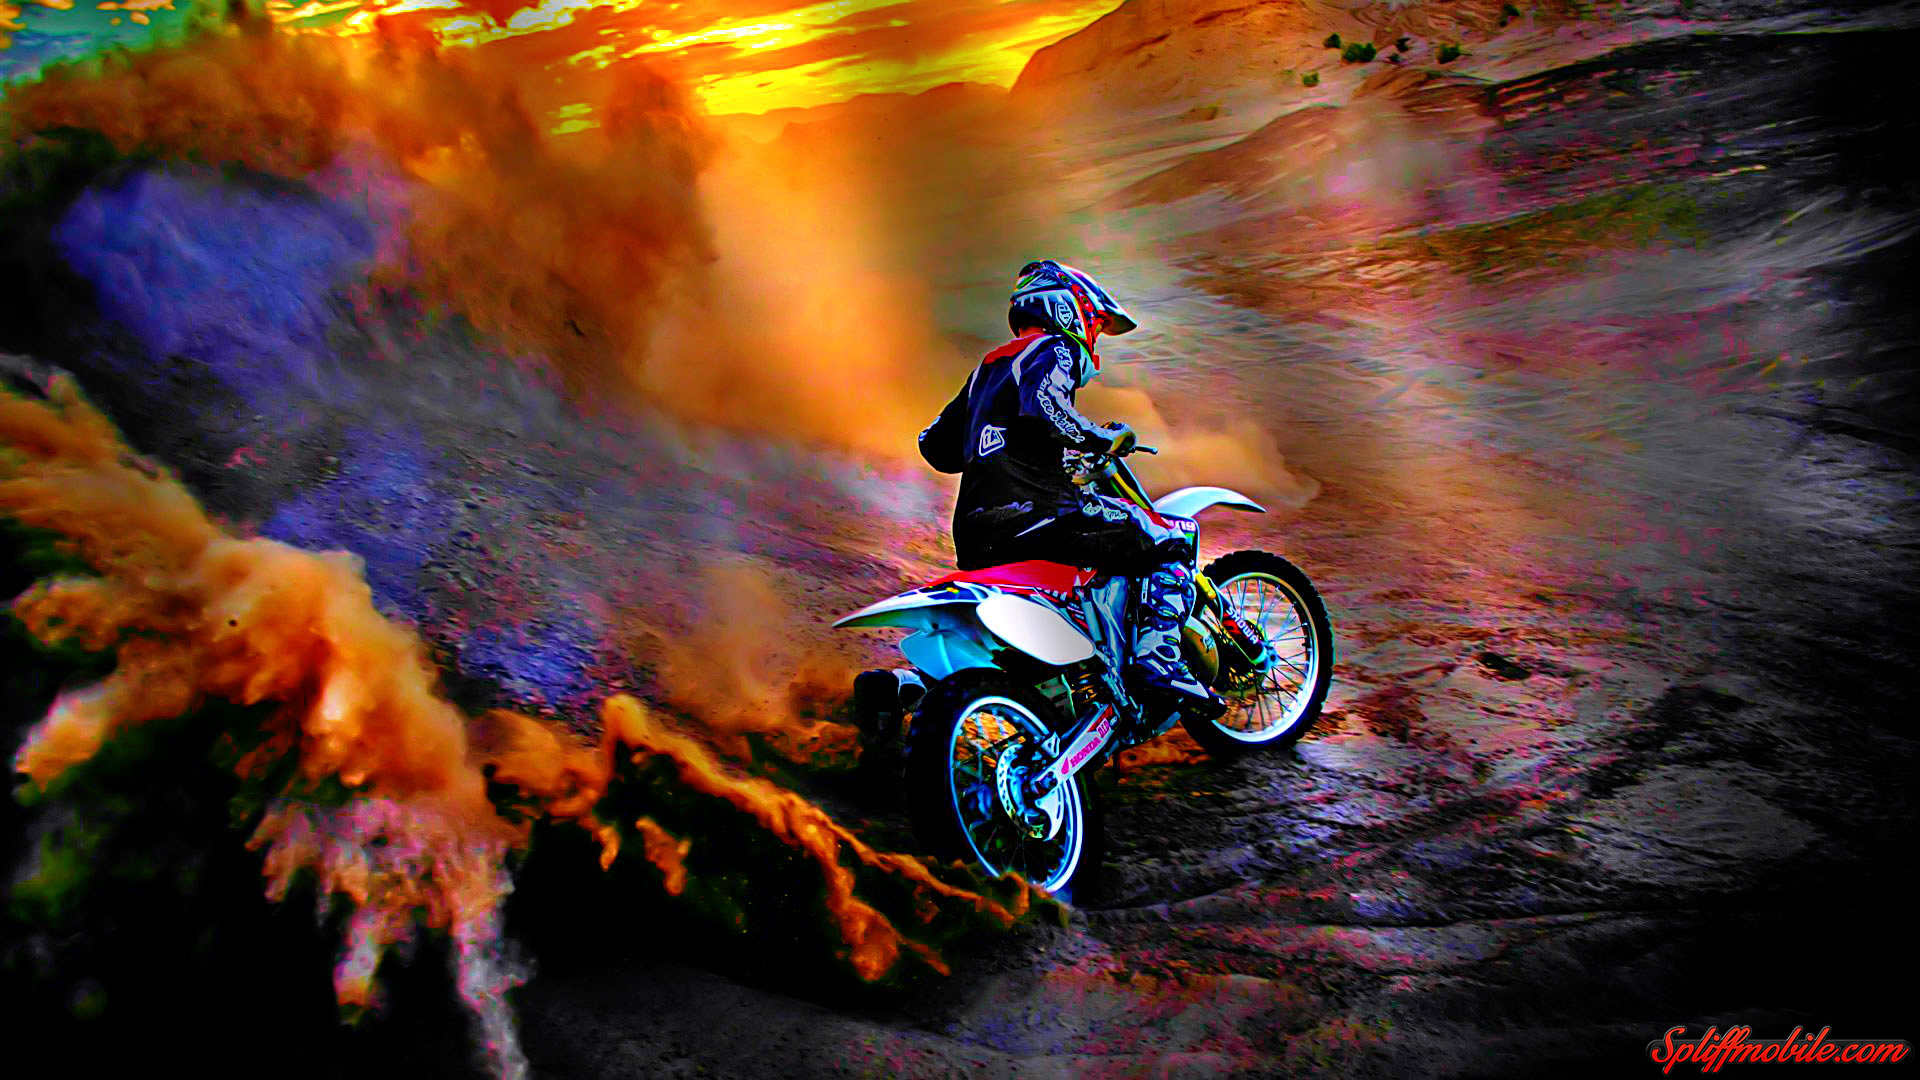 HD Motocross Wallpaper 1920x1080